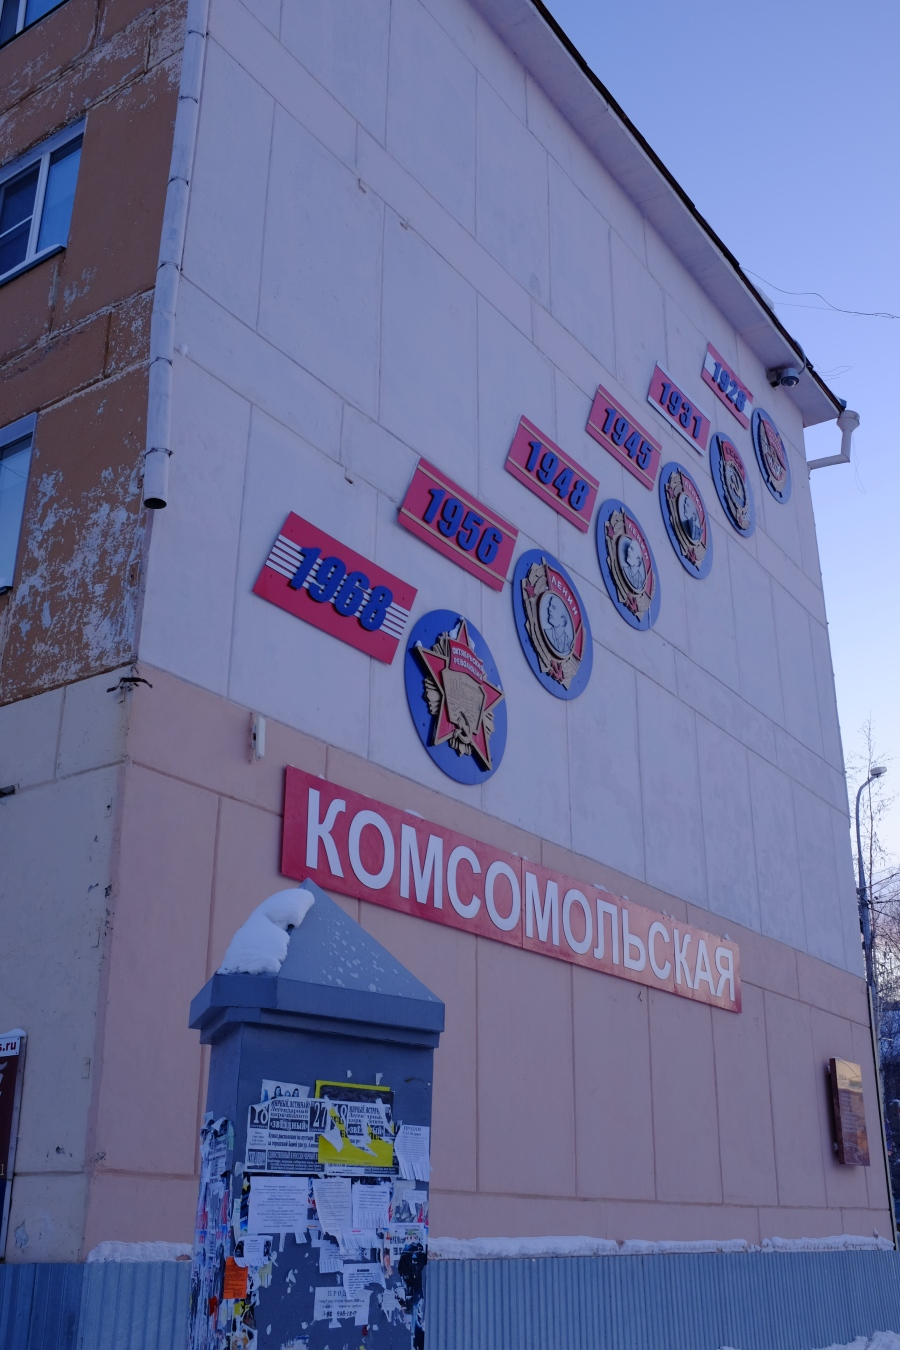 A building in Mirny City, Sakha Republic, Russia that remembers the efforts of the Komsomol. Photo: Cryopolitics.